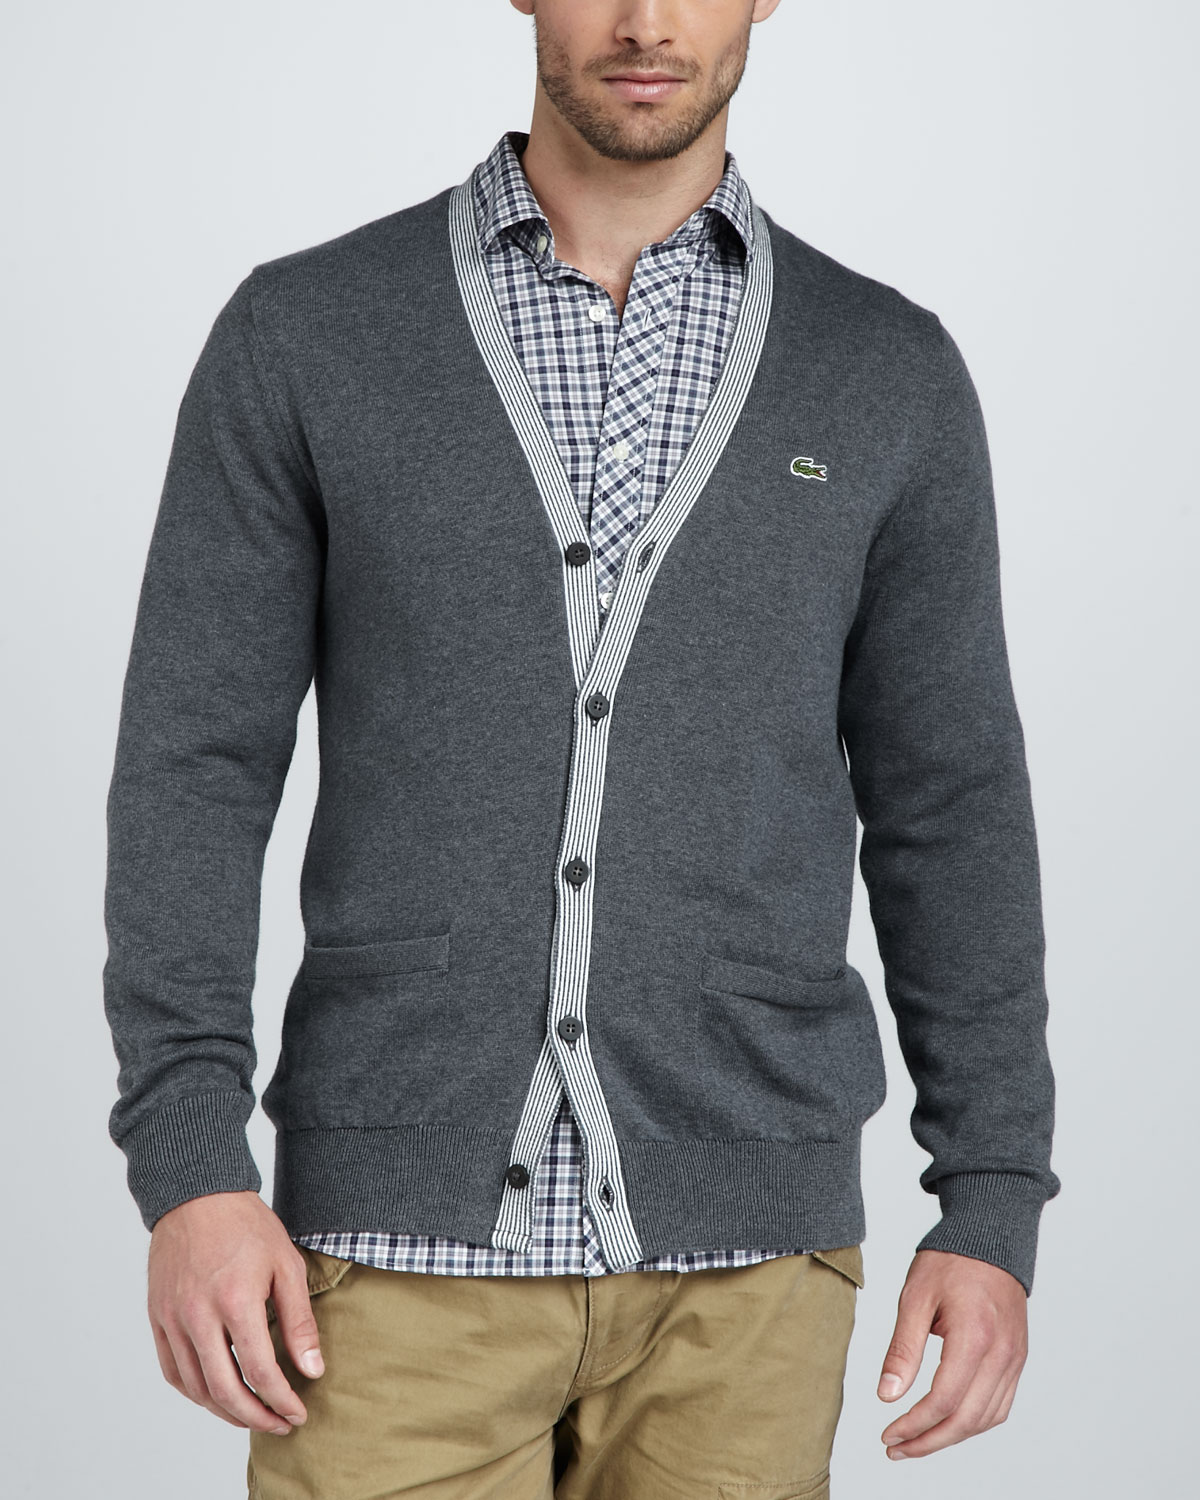 22a51aad599 ... lacoste gray white stripetrim cardigan product